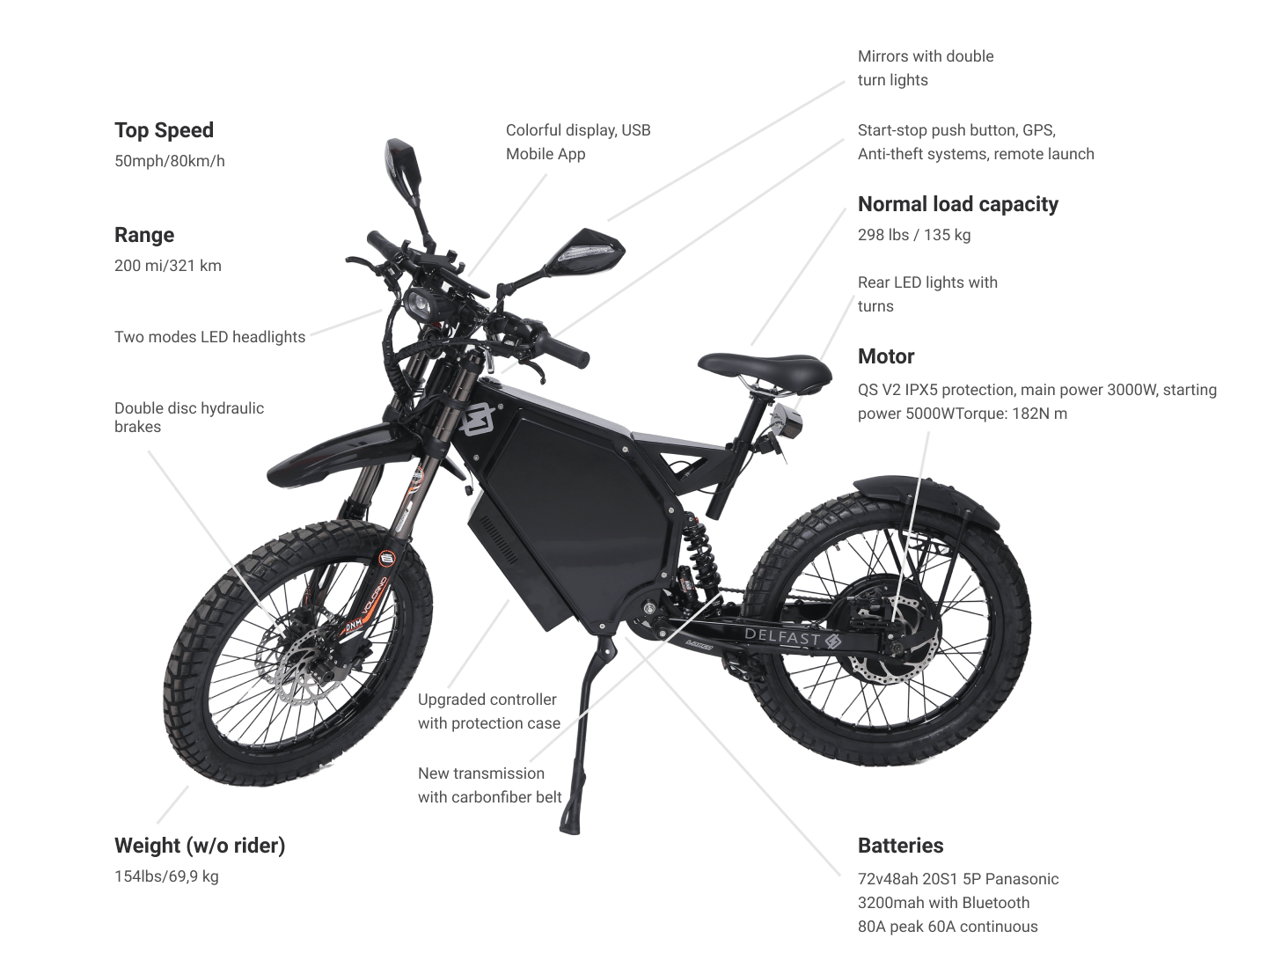 Specs list for the Delfast Top 3.0 ebike